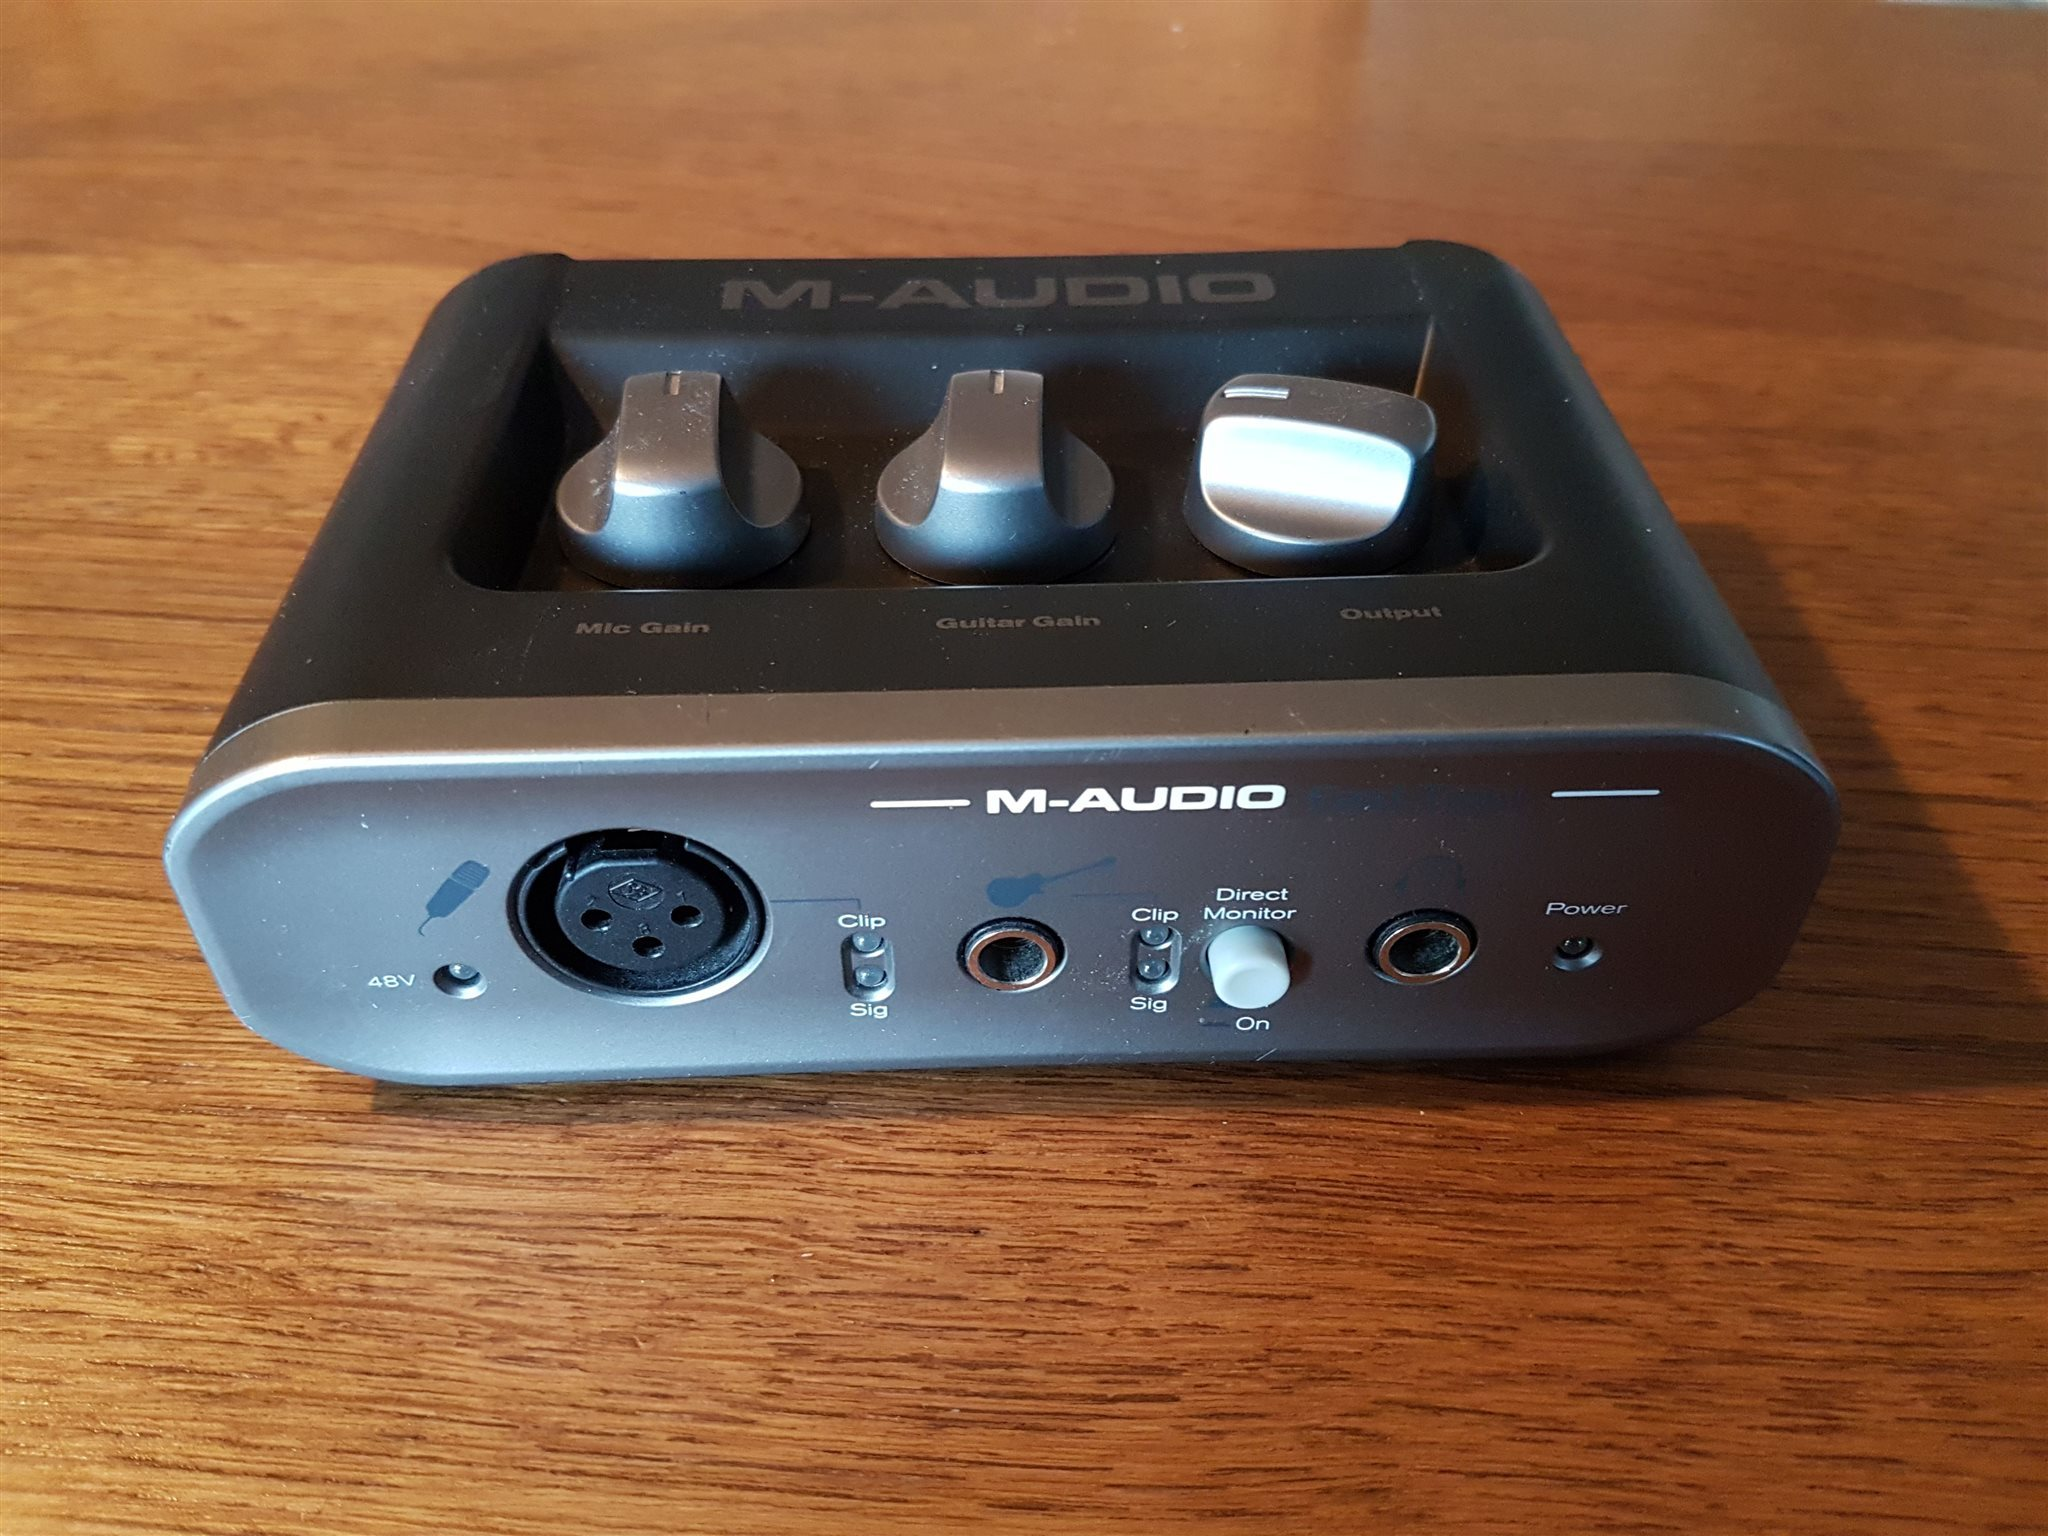 M-AUDIO ljudkort